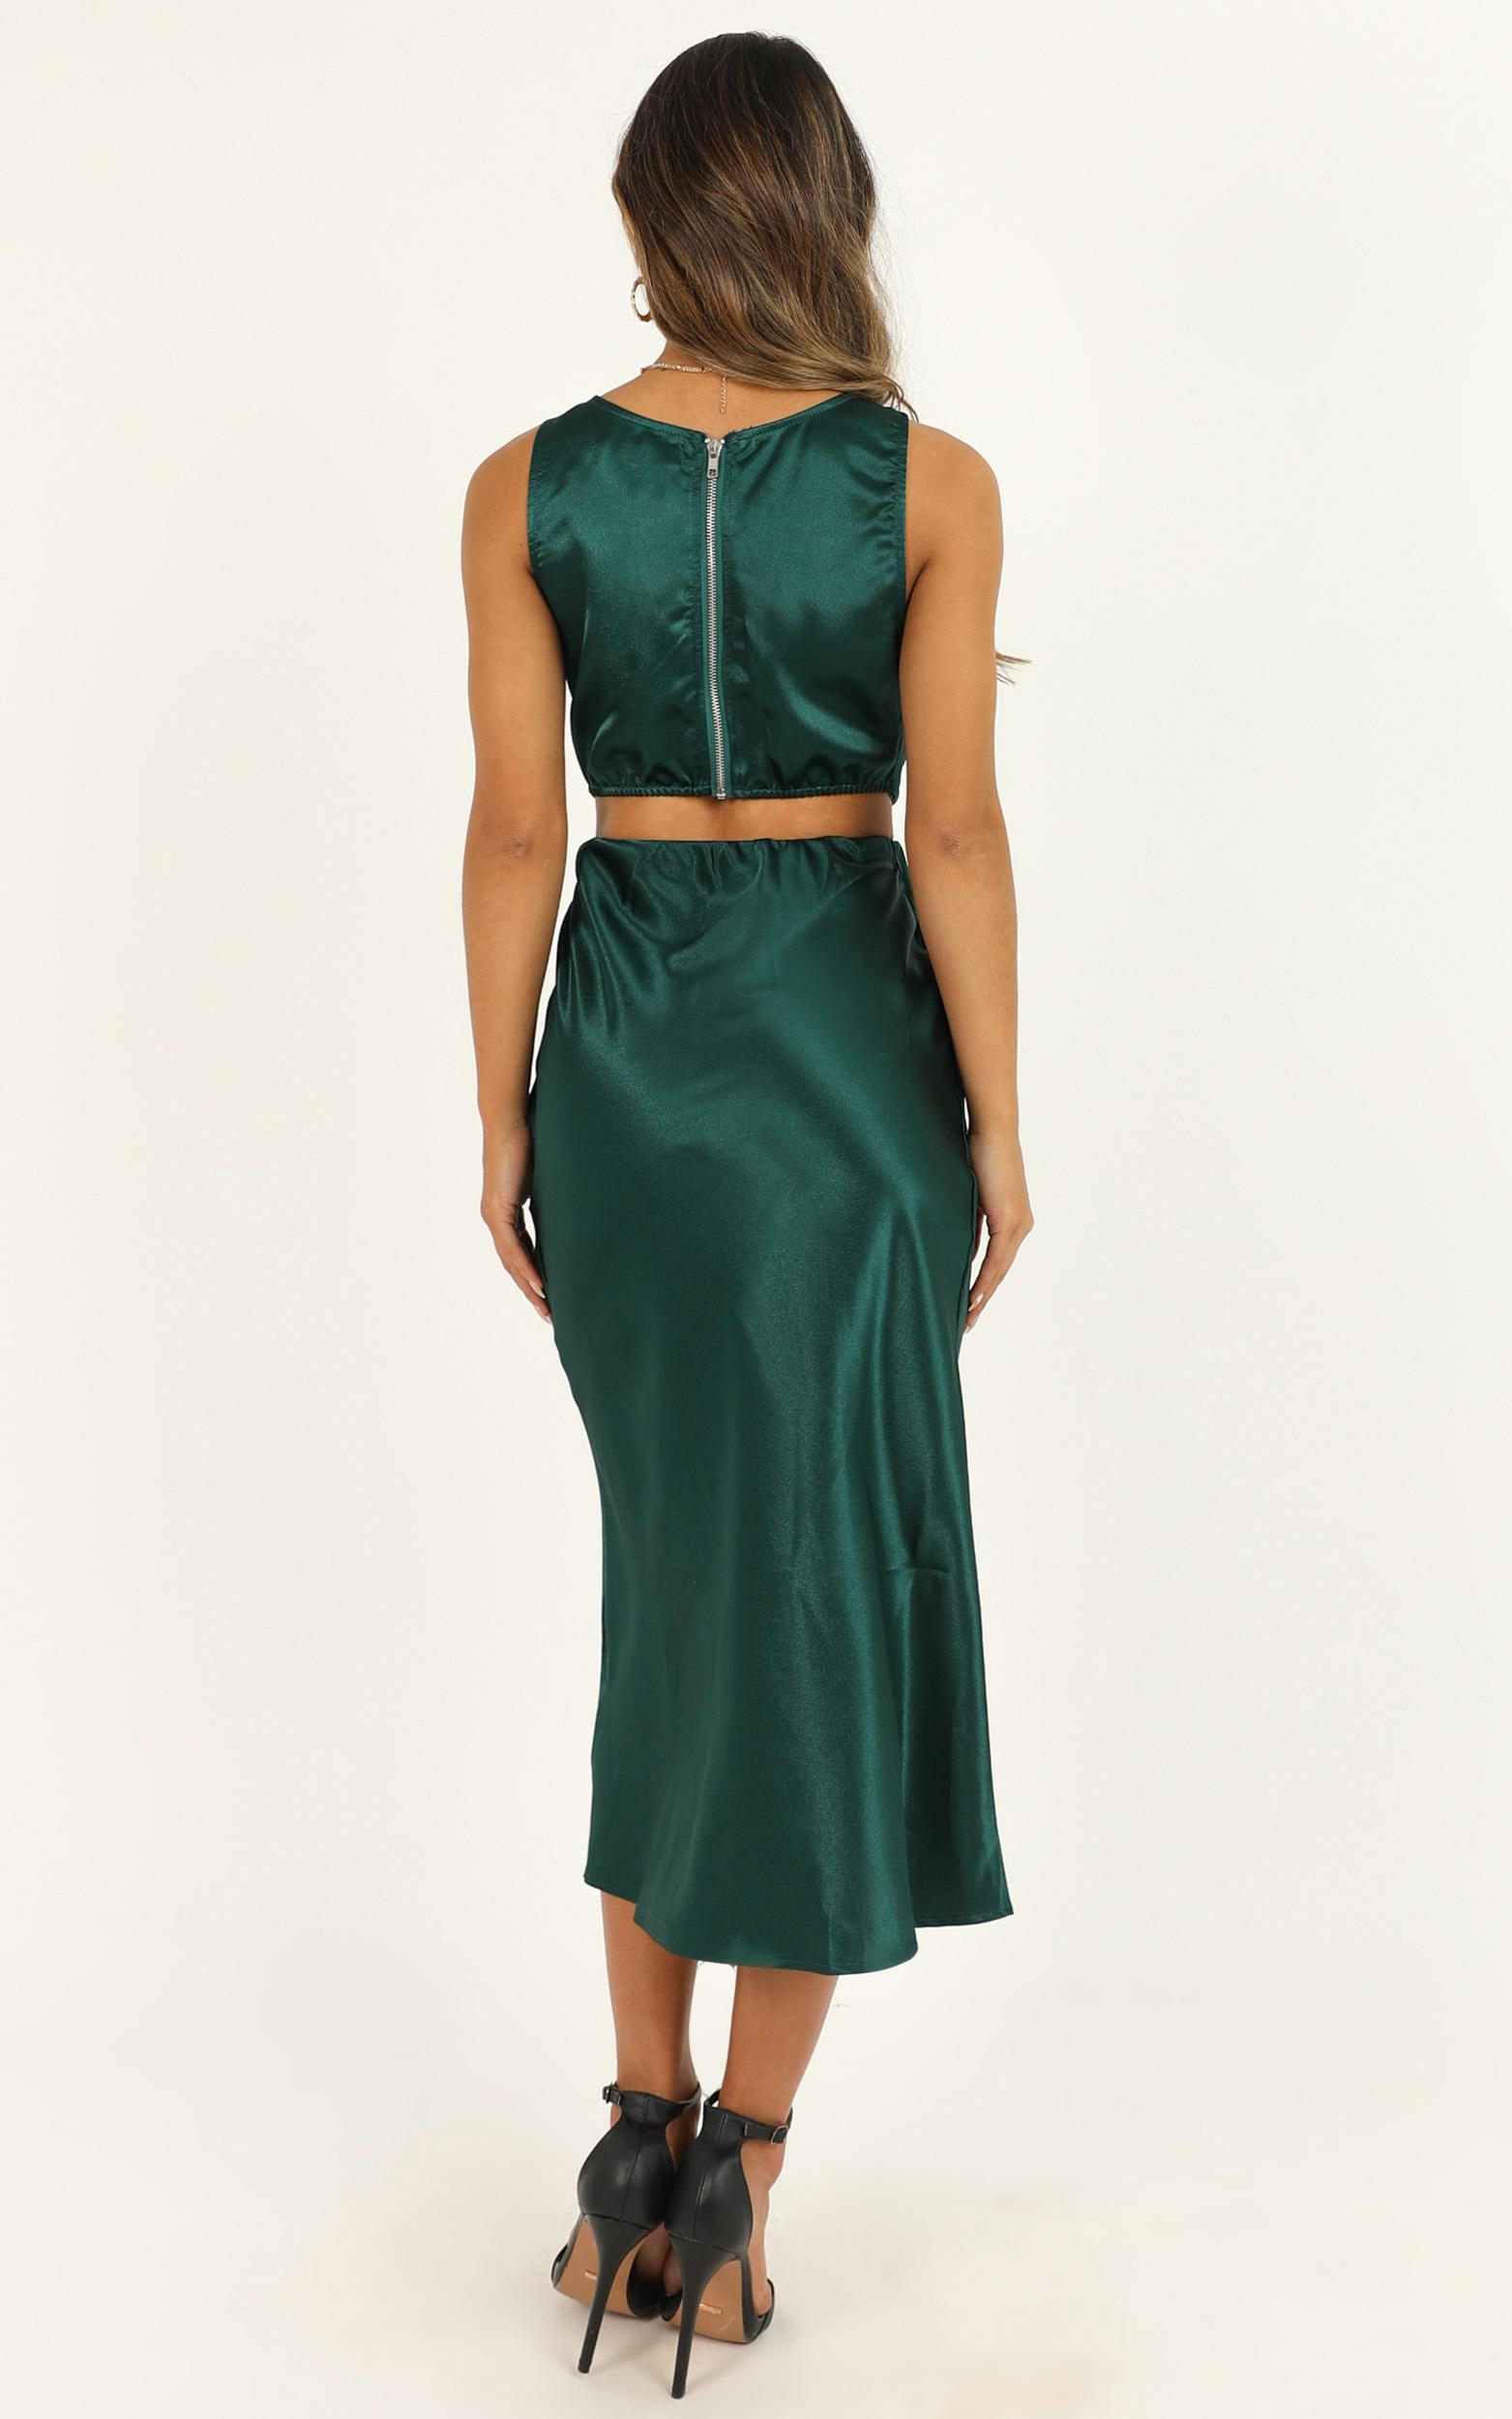 Try My Best midi dress in emerald satin - 12 (L), Green, hi-res image number null